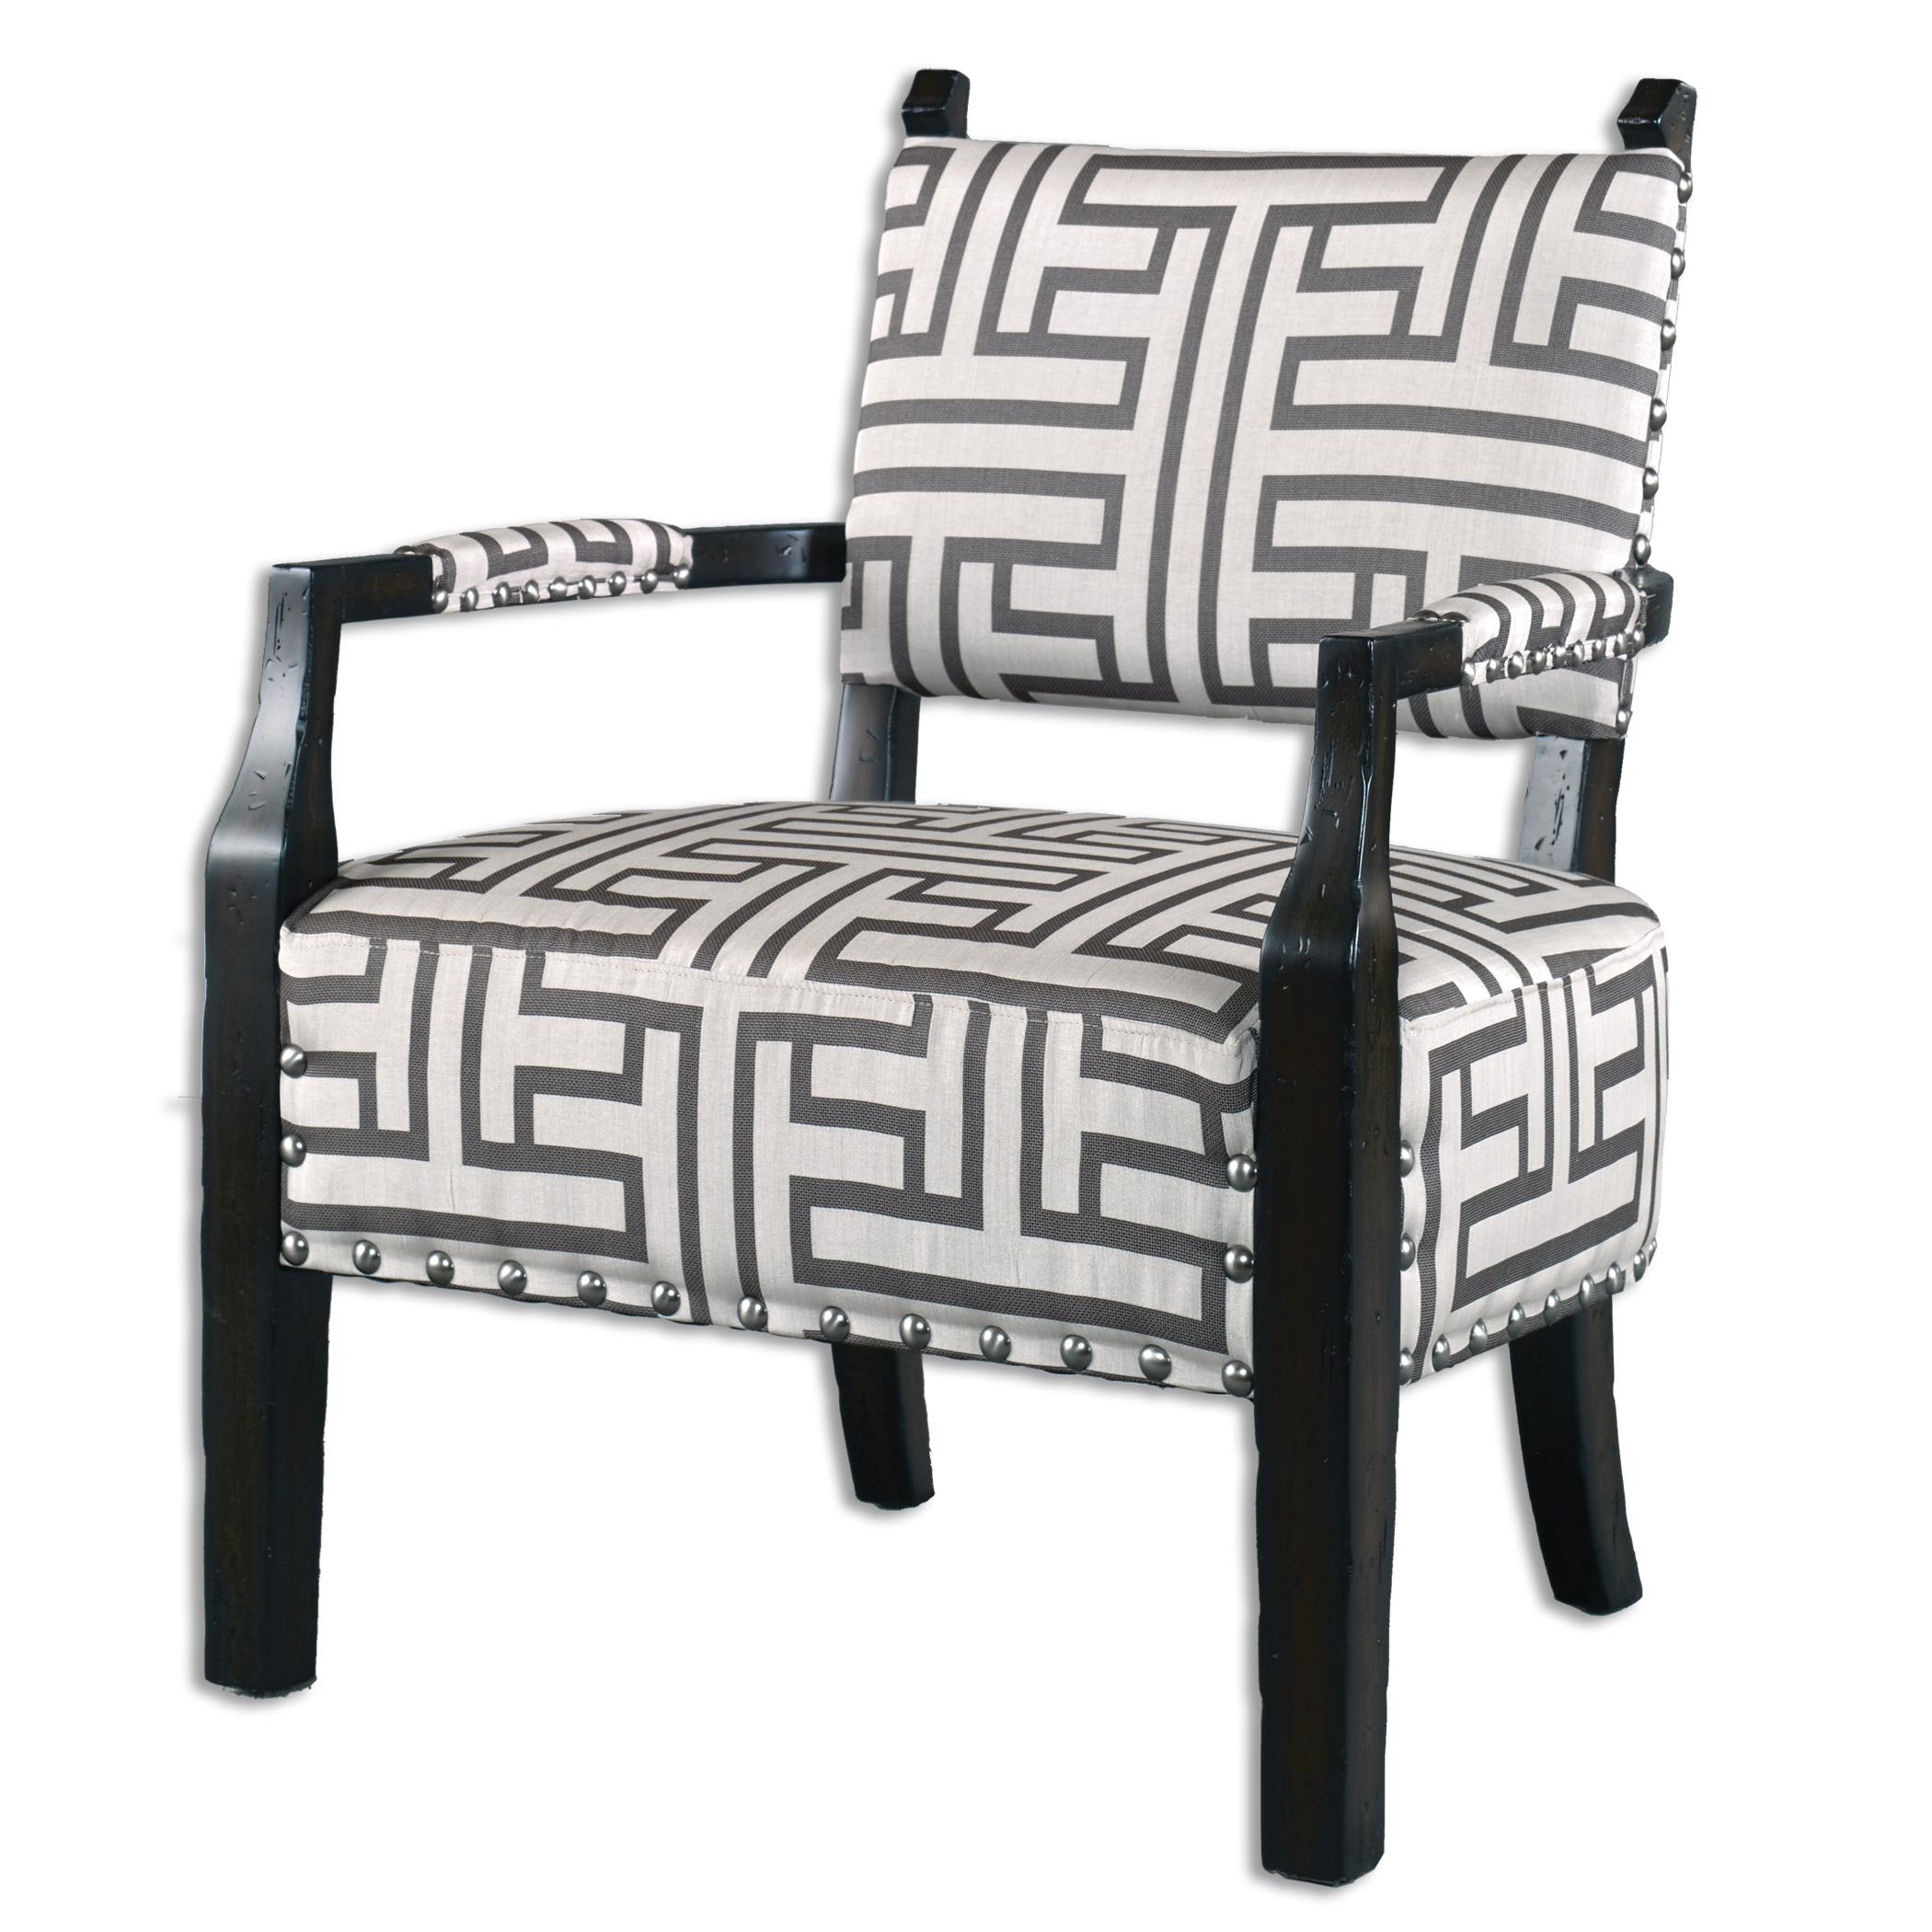 Uttermost Accent Furniture Terica Geometric Accent Chair - Item Number: 23217